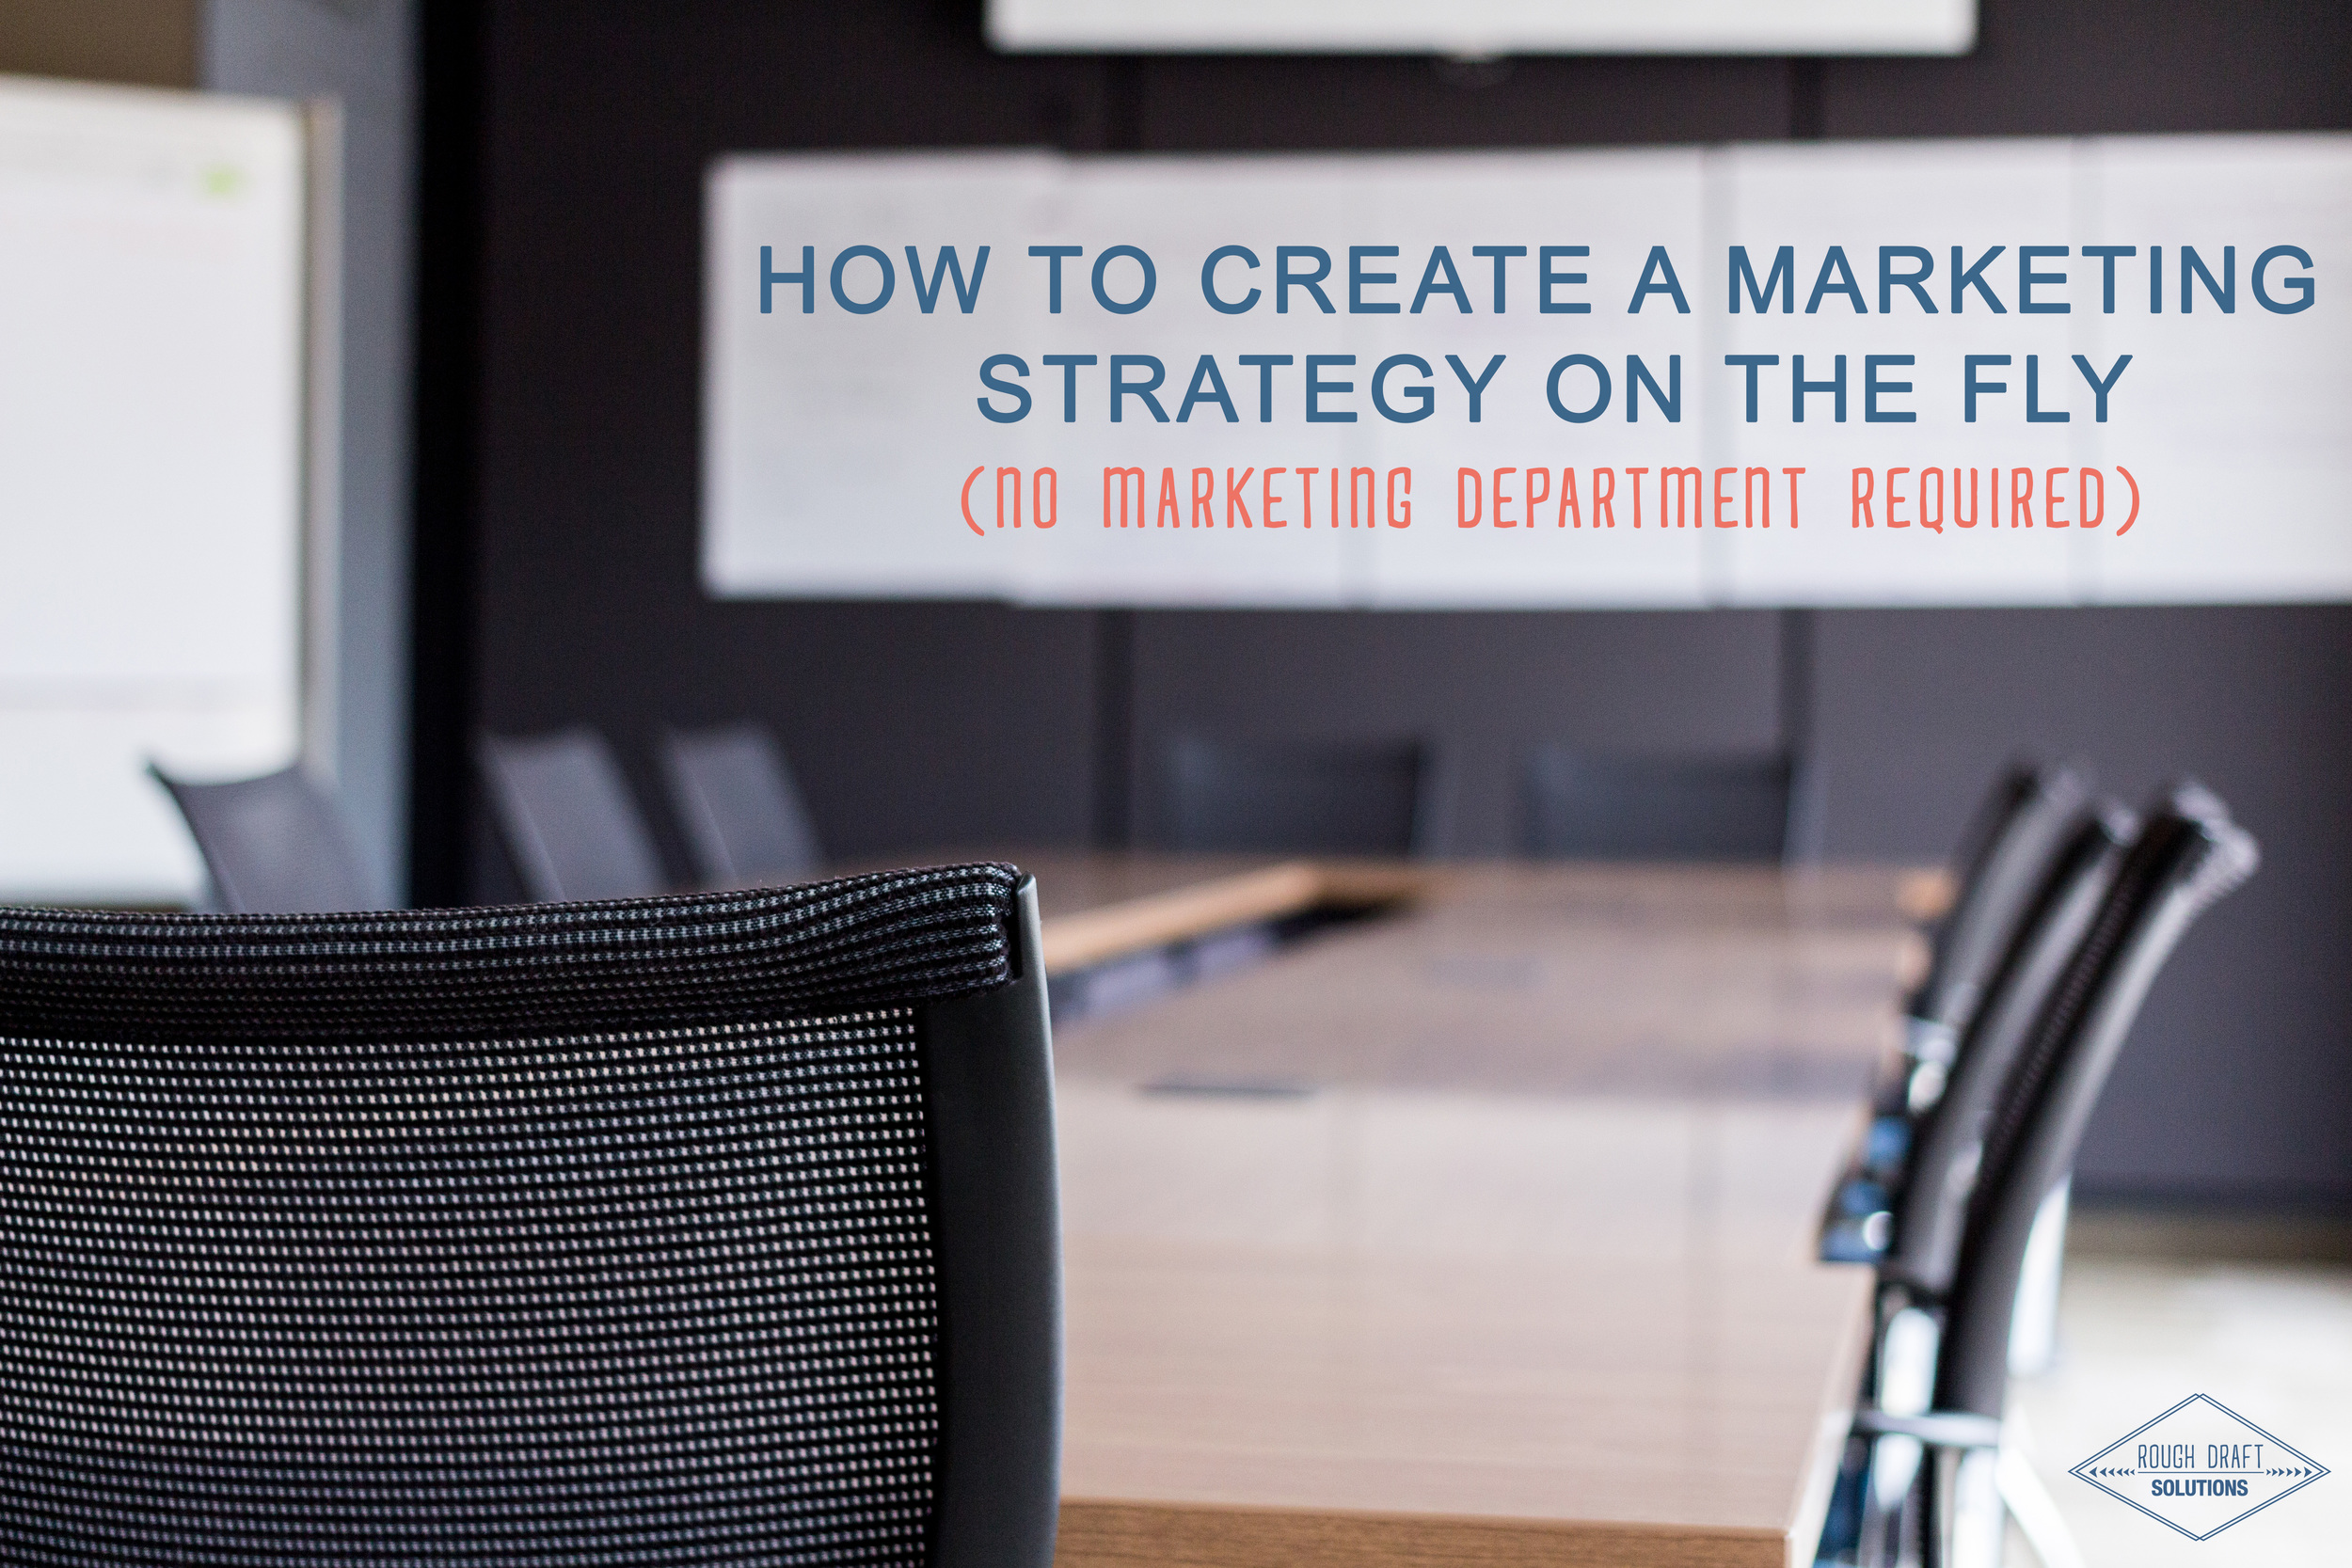 How to Create a Marketing Strategy on the Fly